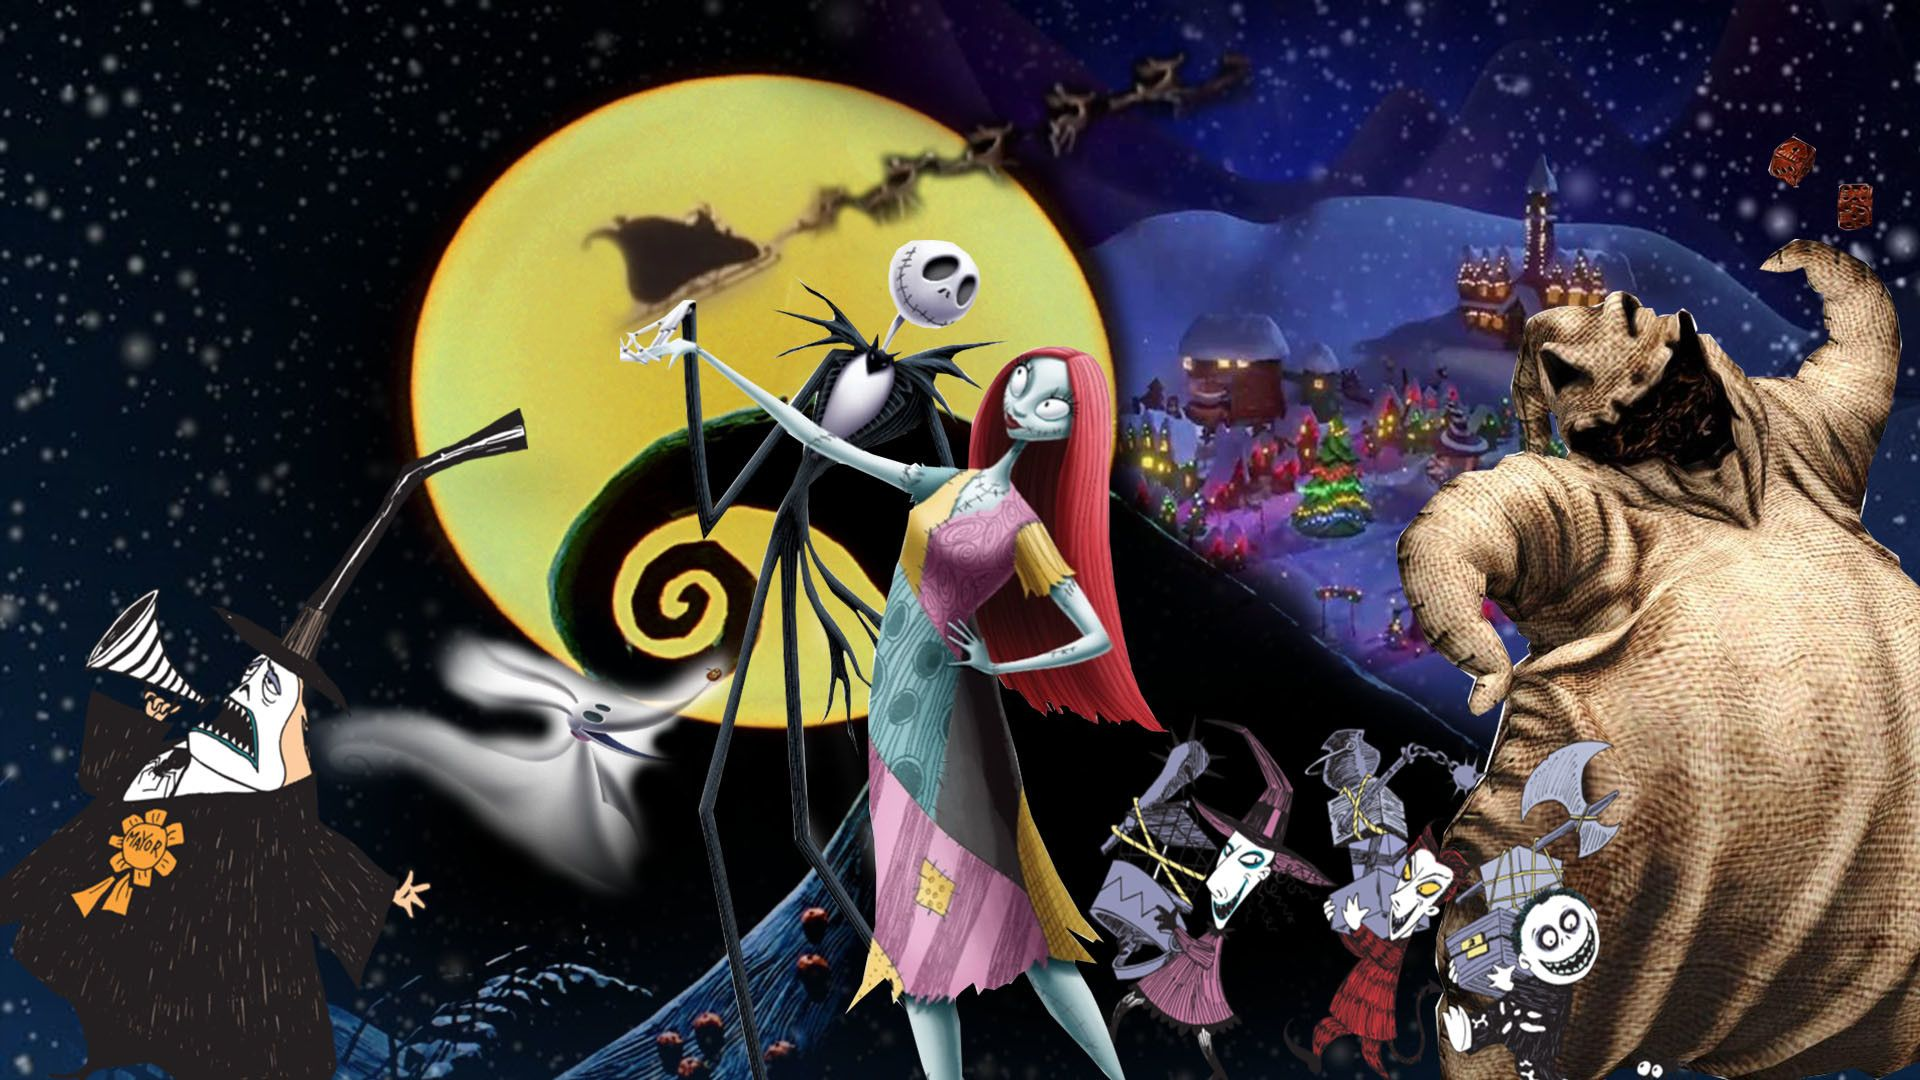 1920x1080 The Nightmare Before Christmas Wallpaper By The Dar